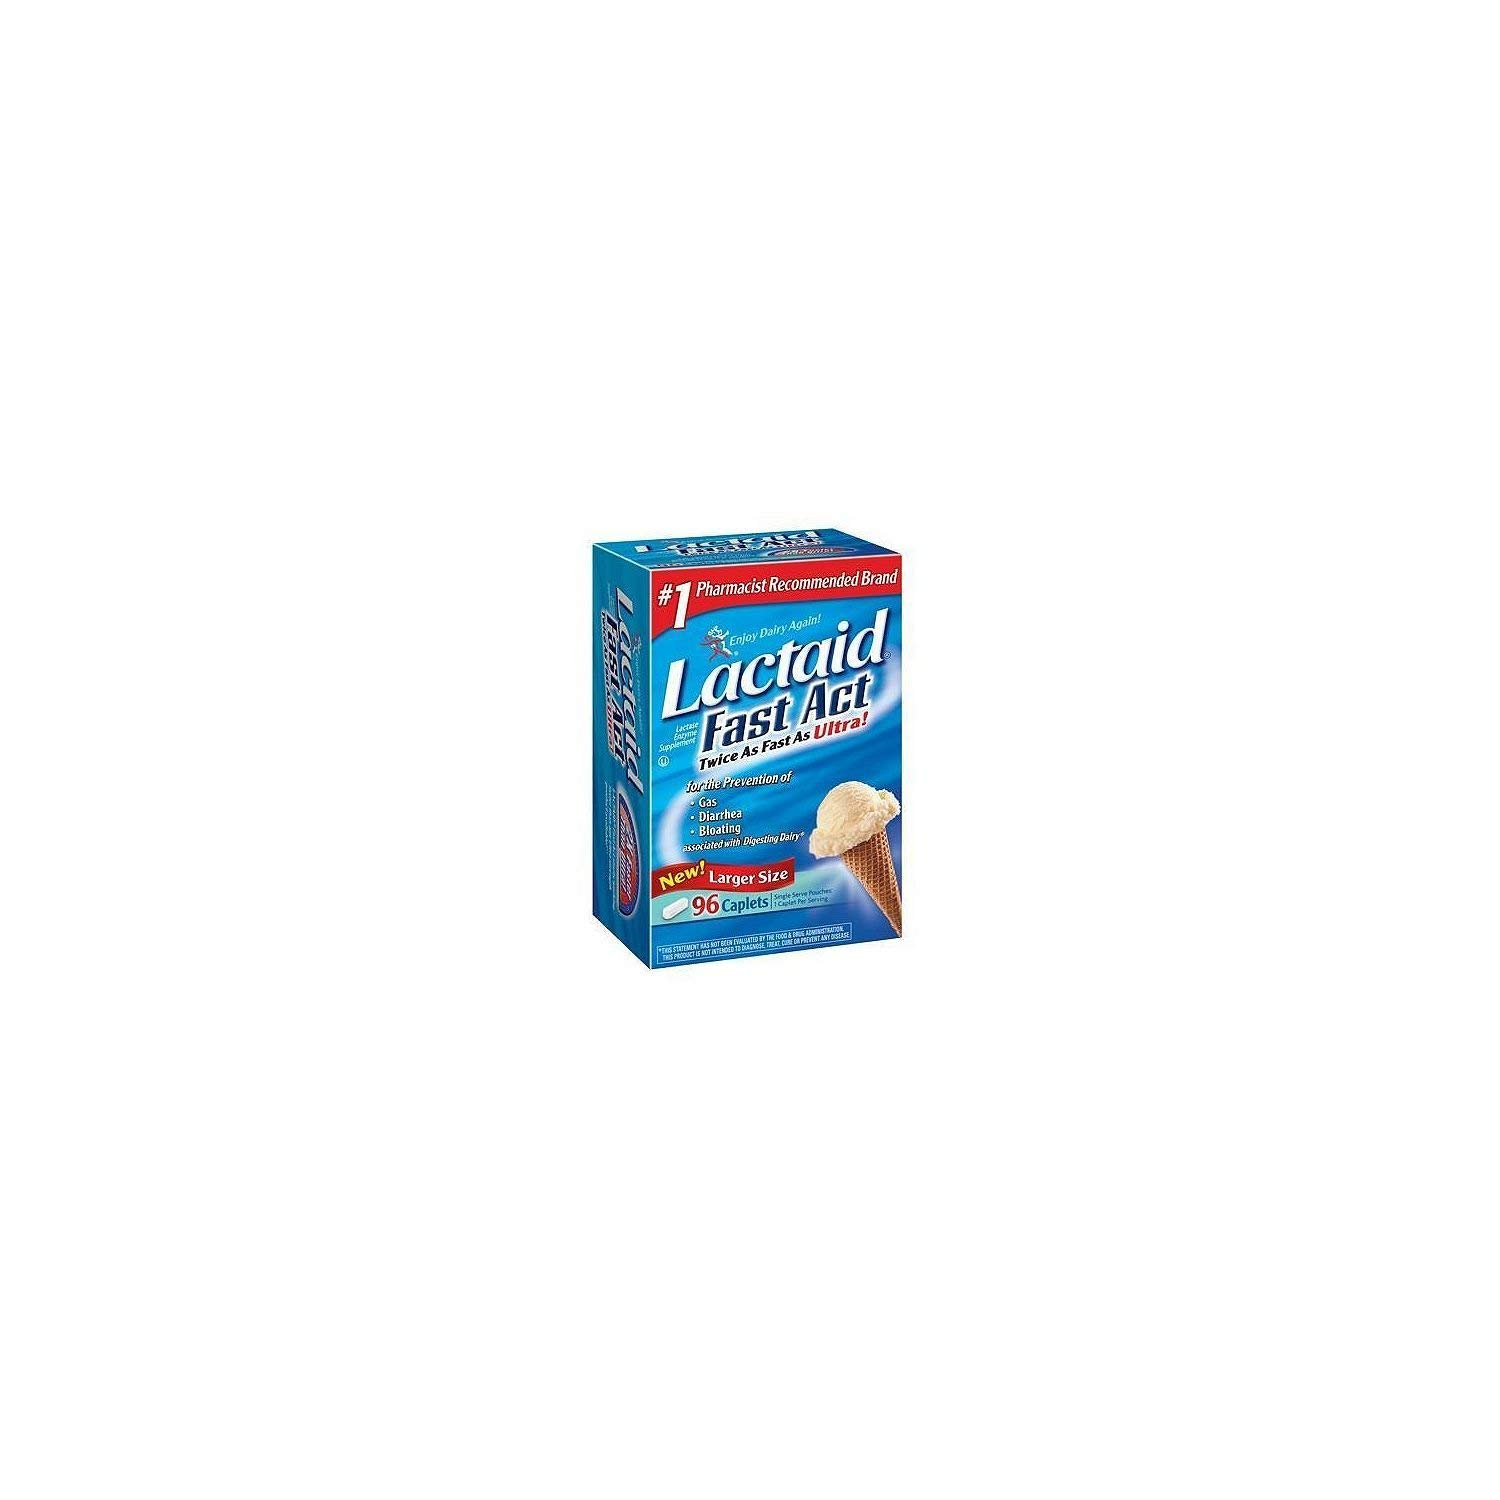 Lactaid Fast Act - 90 ct. by Lactaid